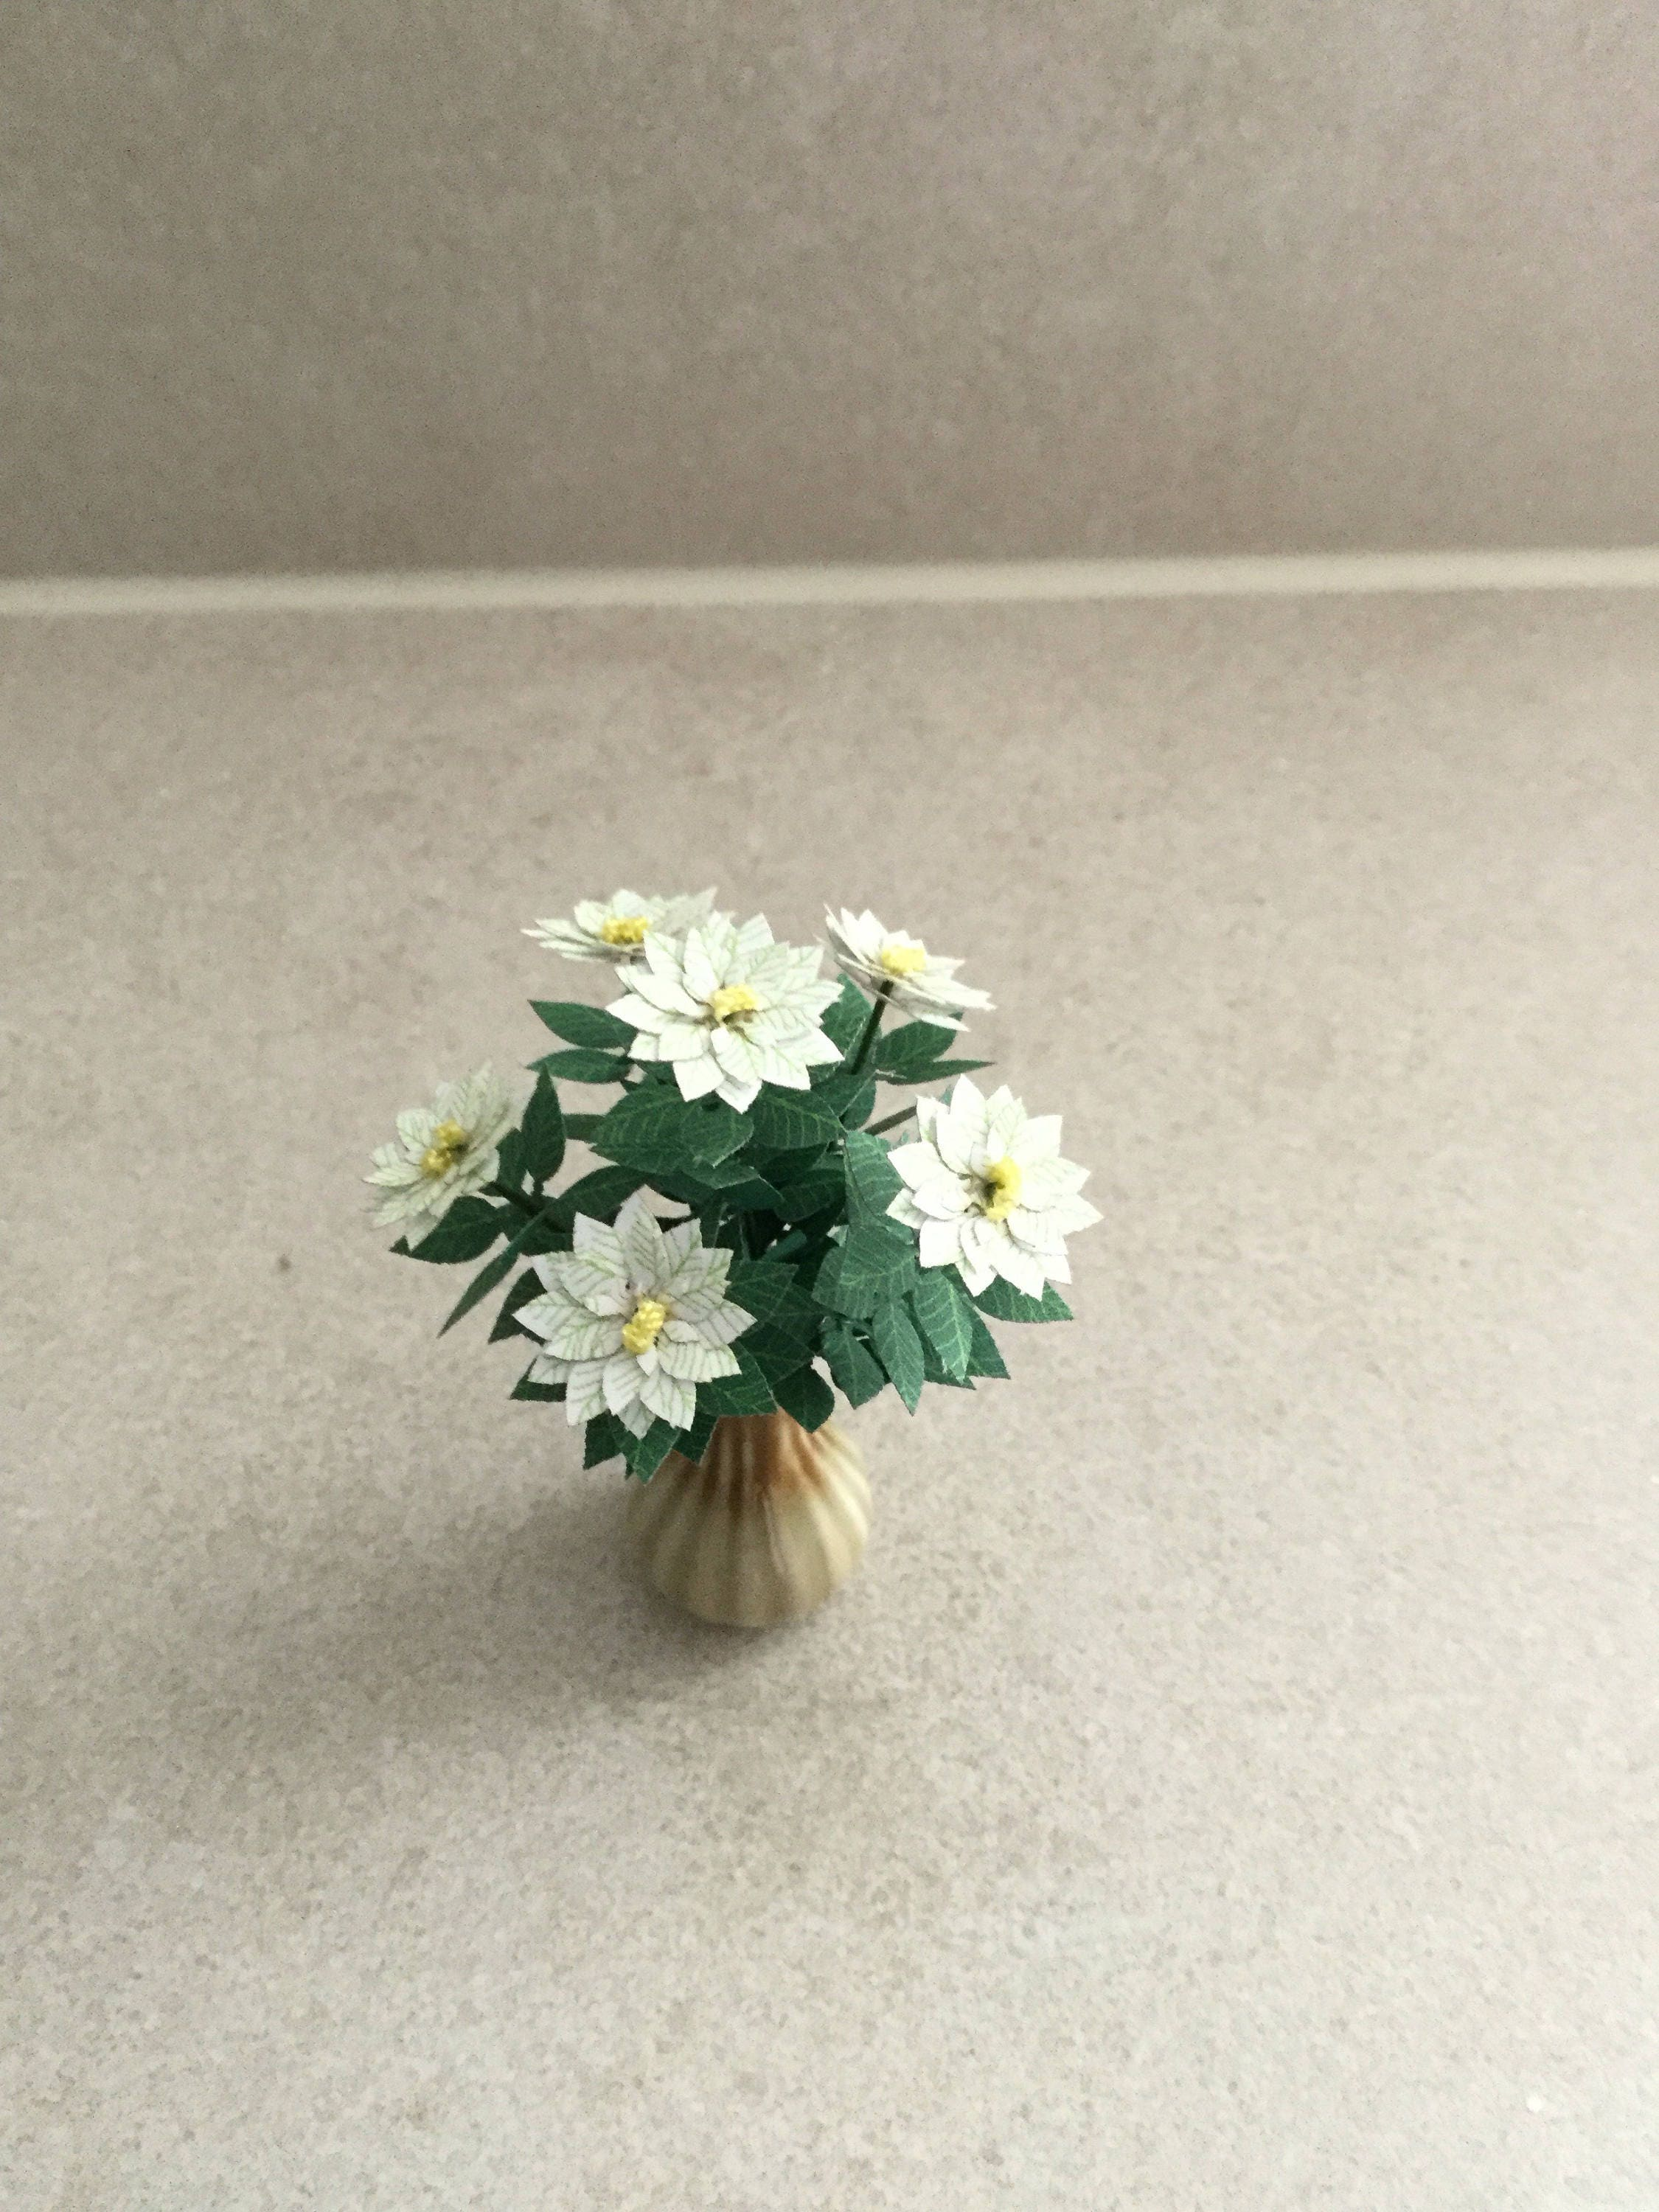 Dolls House Flowers 112th Pot Plant Dolls House Miniature Flowers 112th Scale